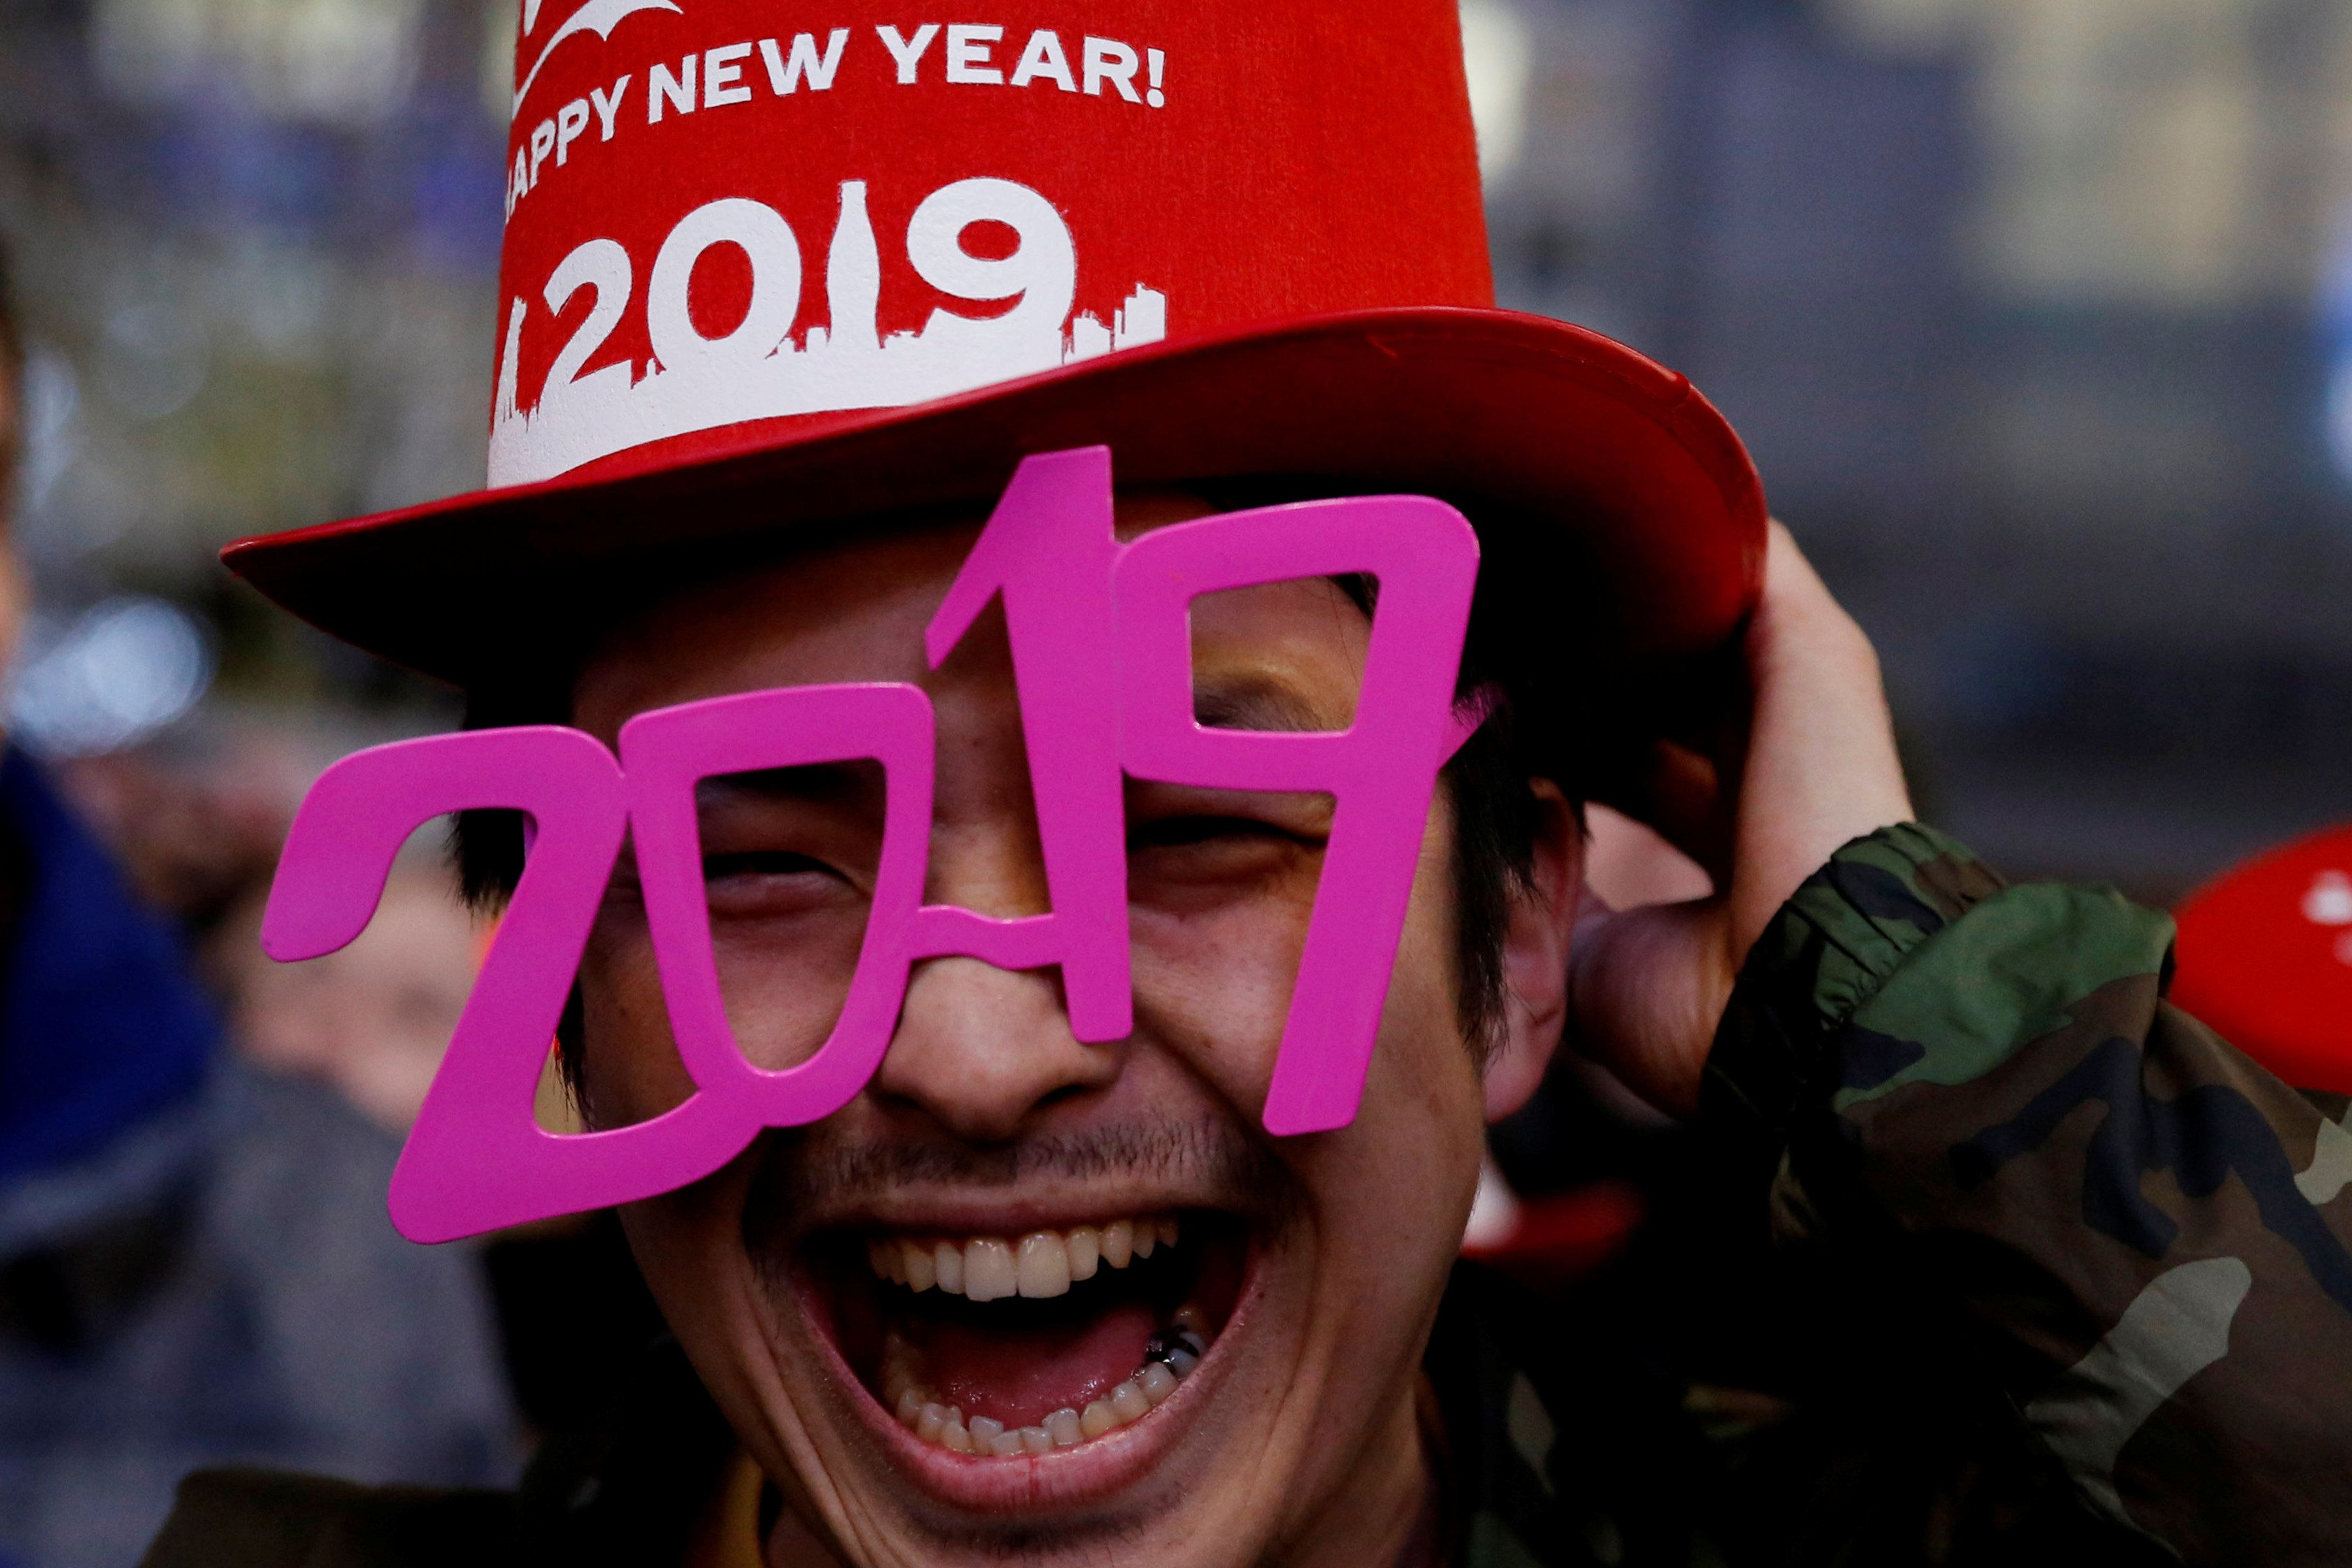 The Big Events of 2019